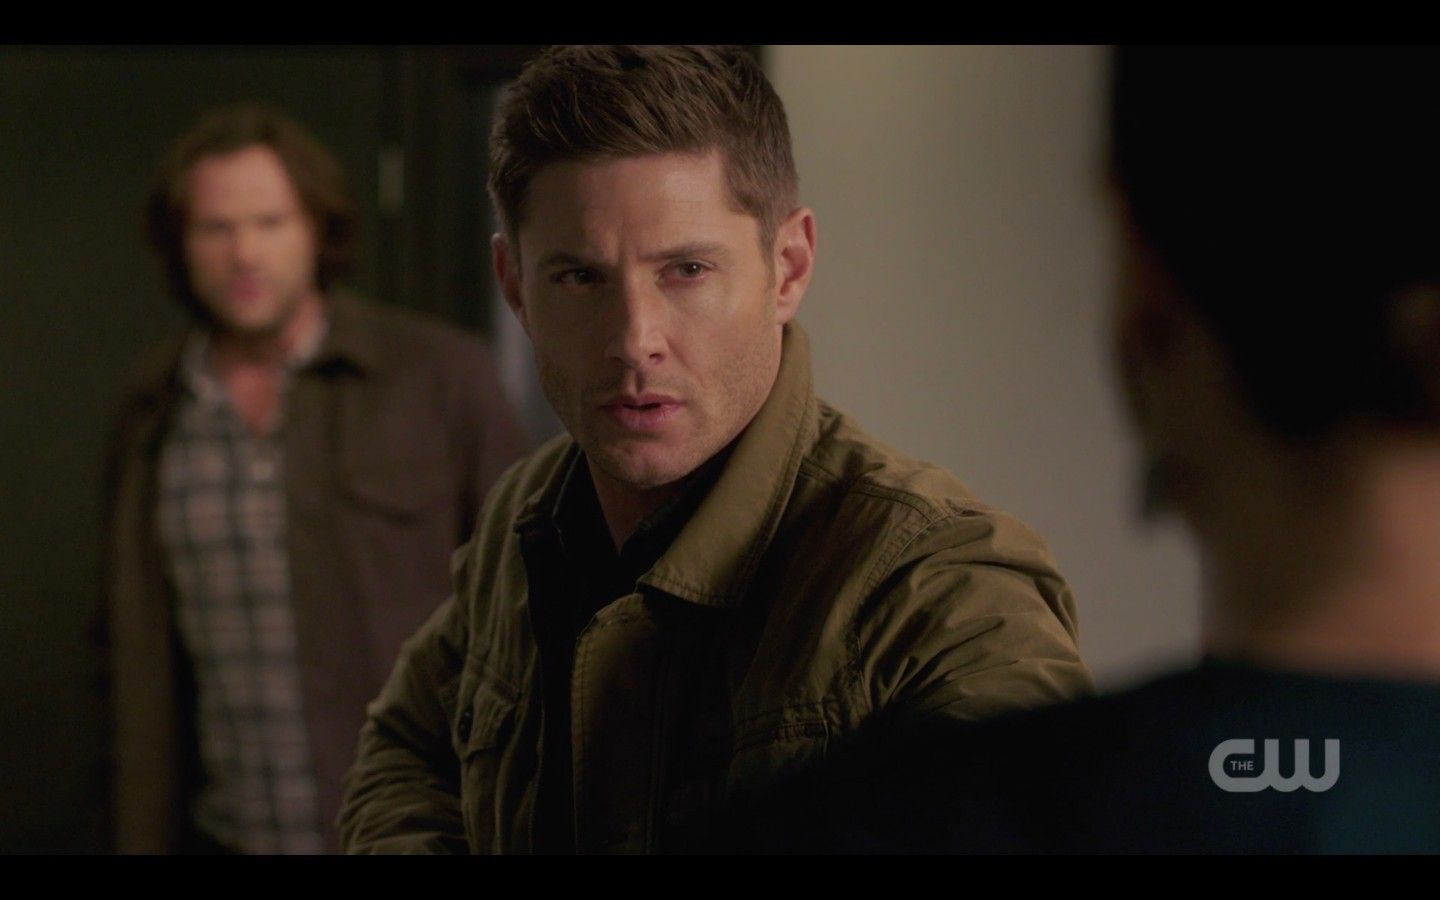 dean winchester becomes michael for jack sam spn 1409 kill him